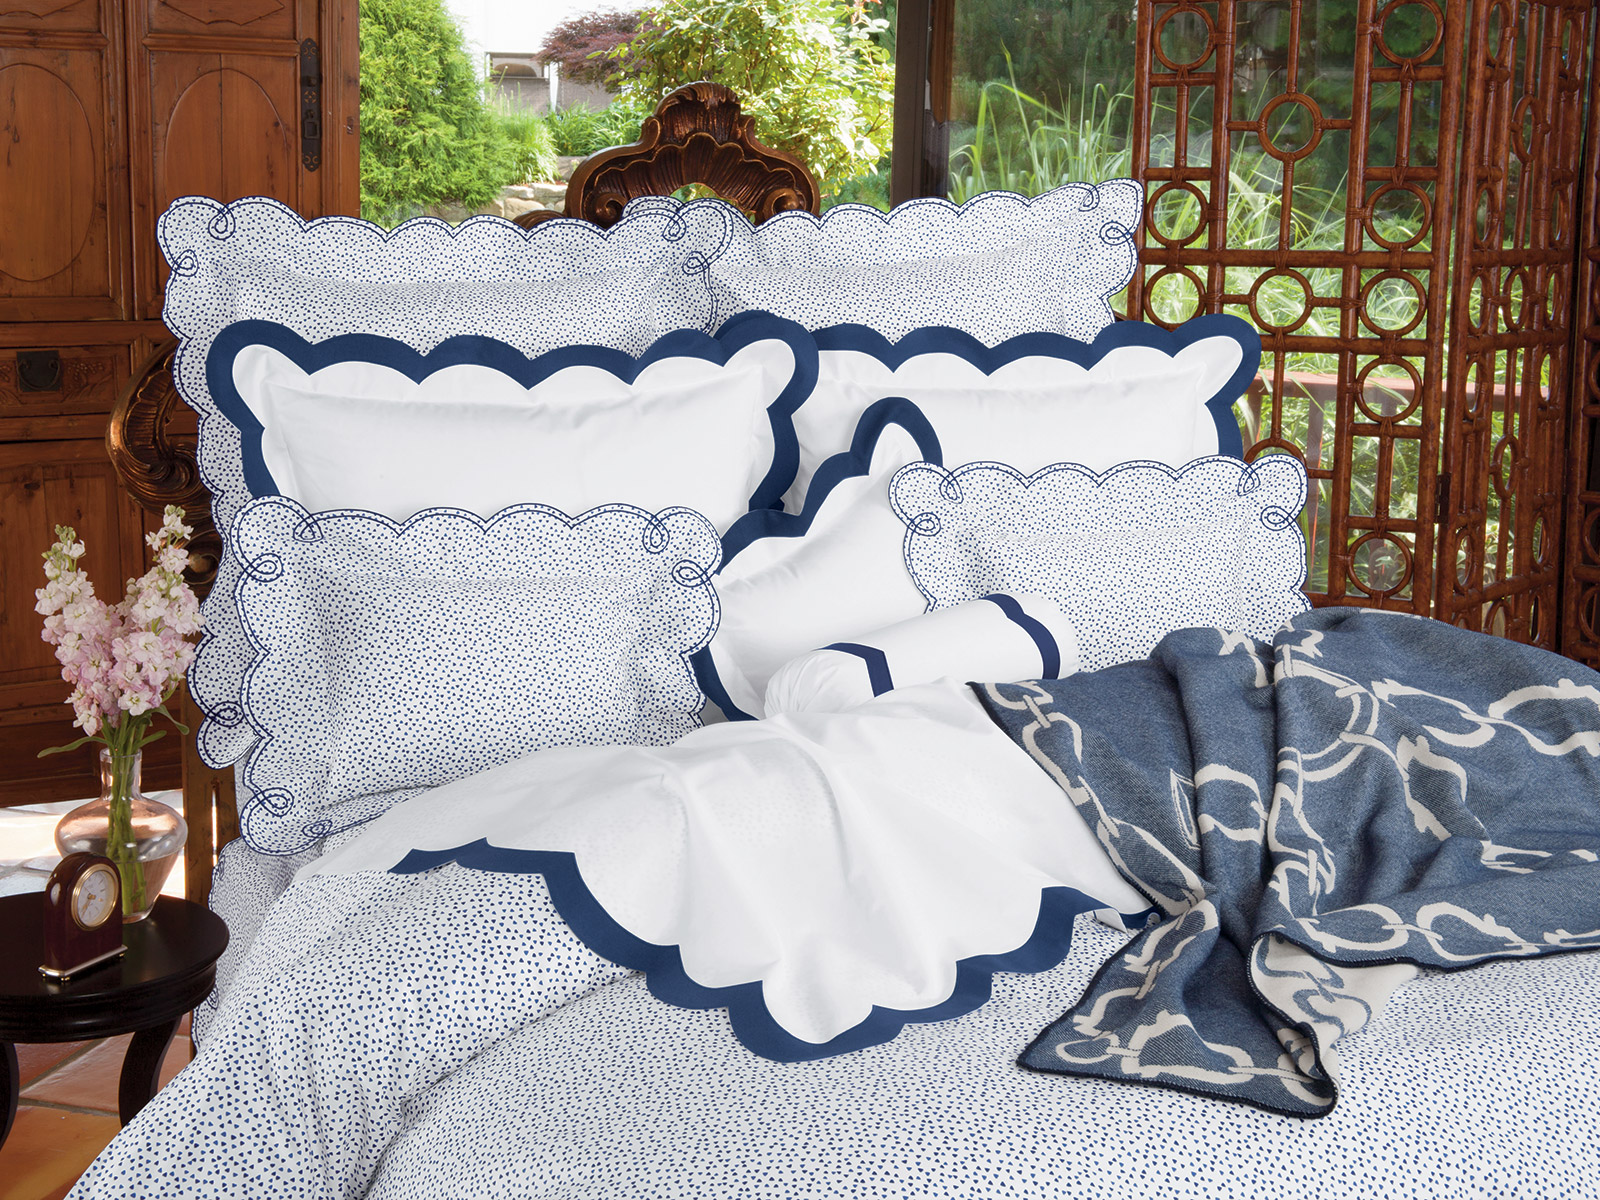 d arcy  fine bed linens  luxury bedding  italian bed linens  - d'arcy  artsy hearts